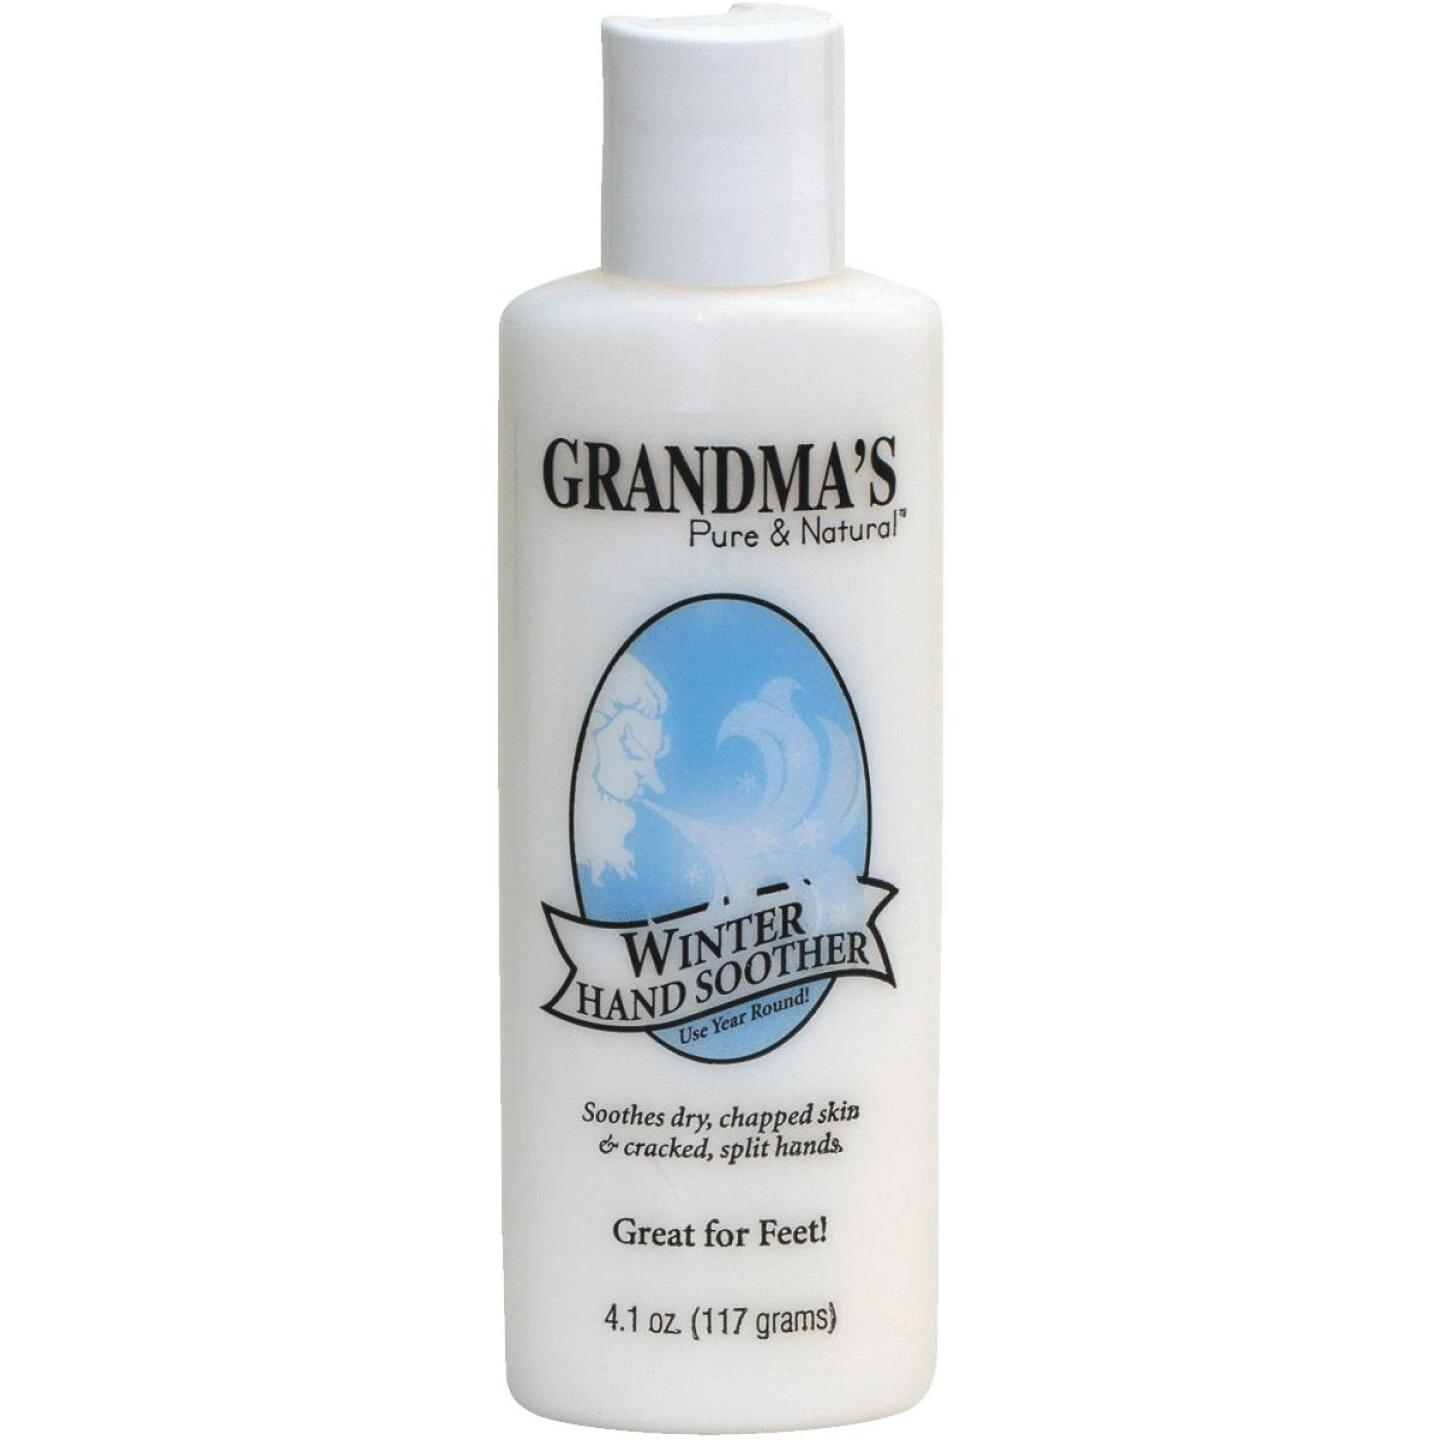 Grandma's Soother Lotion and Balm, 4.1 Oz. Image 1